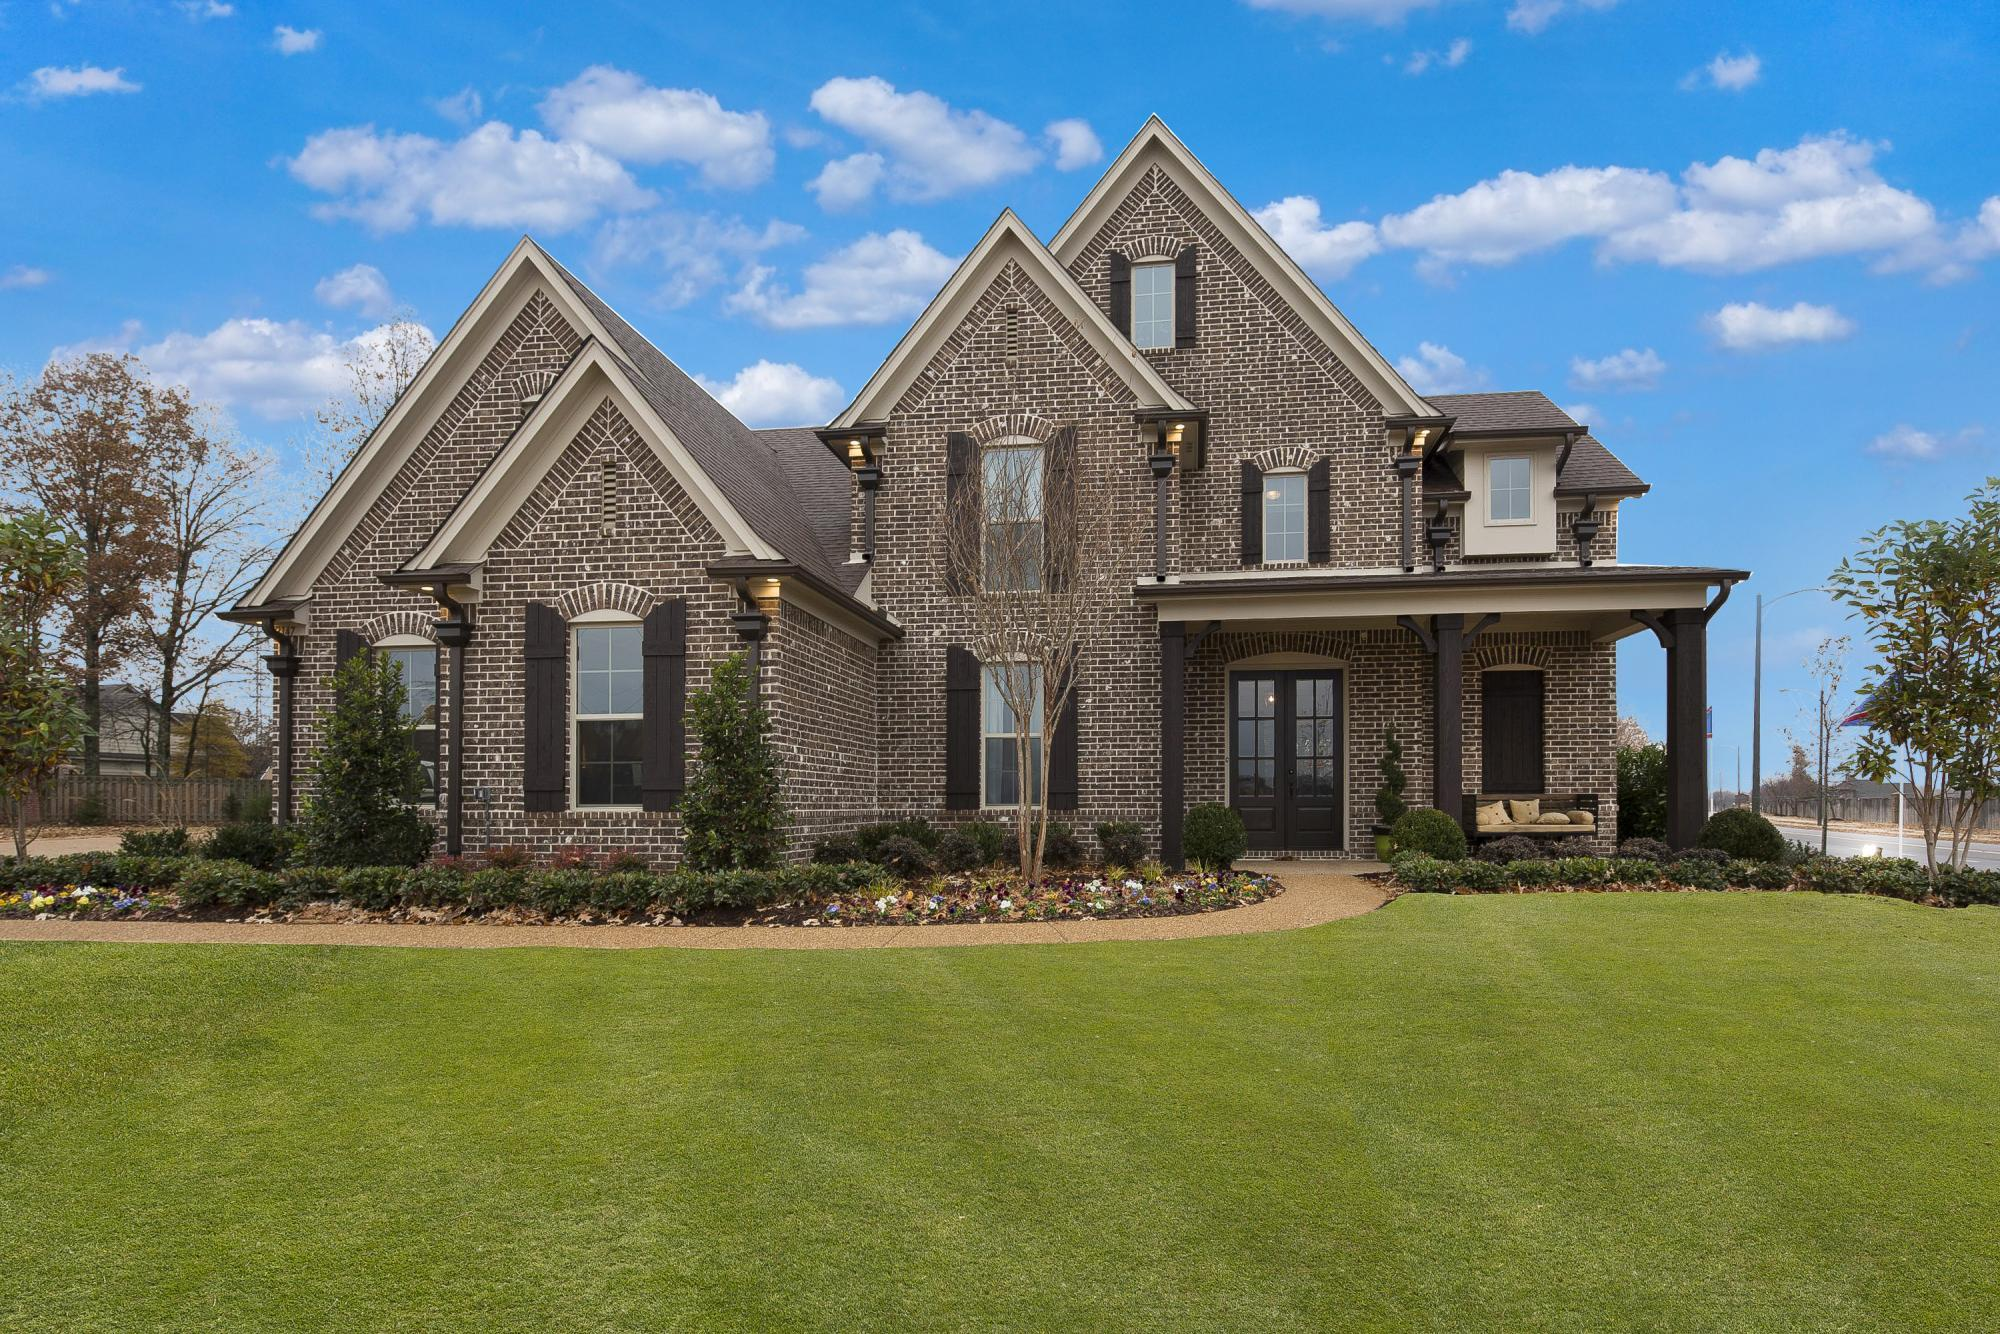 cordova new home 55 active adult communities newhomesource rh newhomesource com houses for sale in lakeland tn with pool houses for sale in lakeland tn